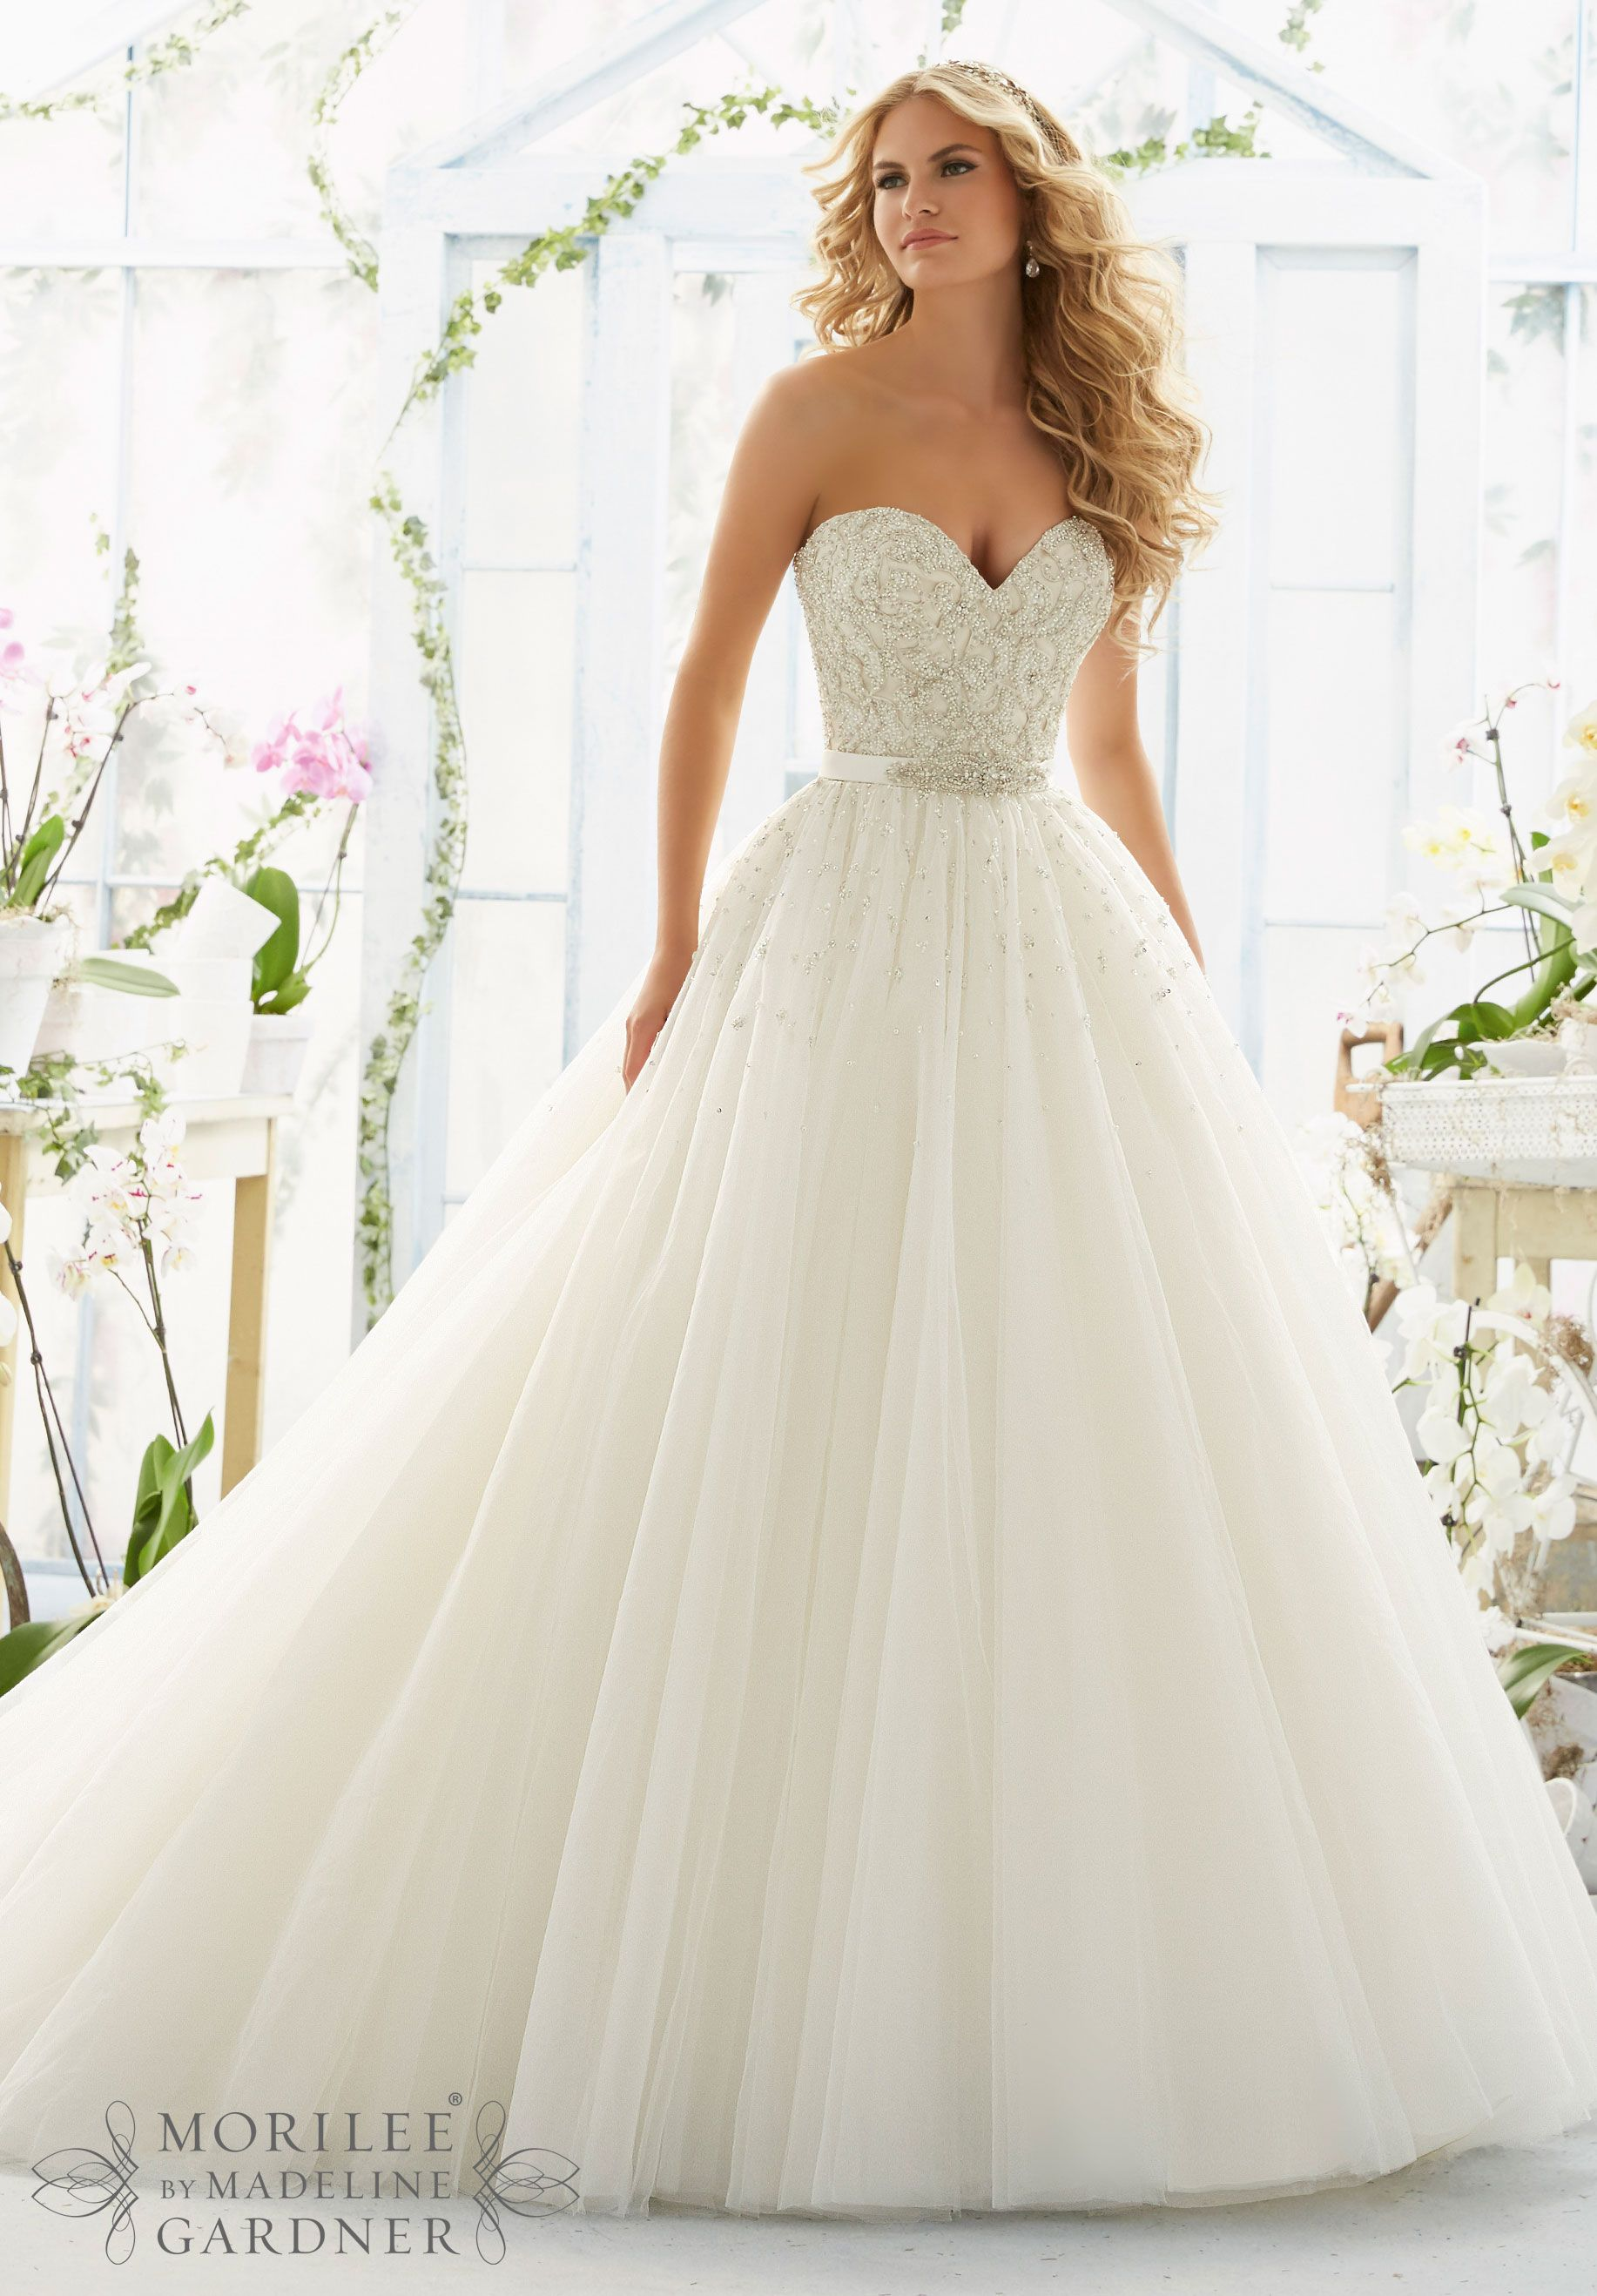 17 Best images about Ball Gowns on Pinterest | Dress styles ...